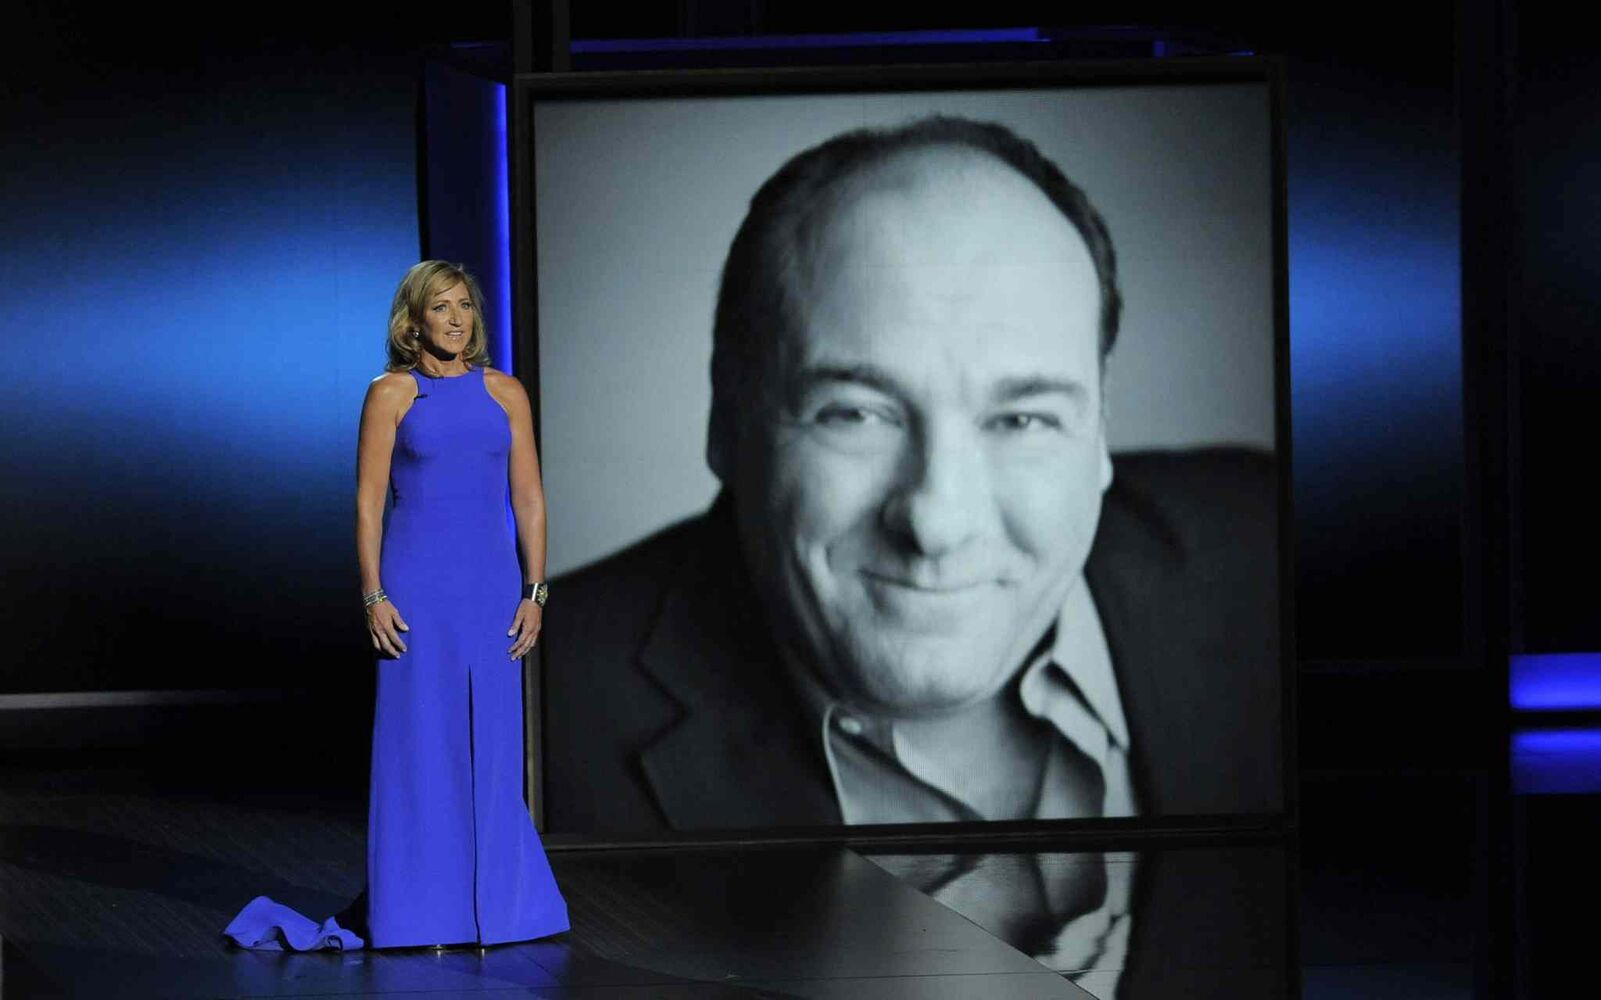 Edie Falco presents a tribute to James Gandolfini on stage. The actor, famous for his work in The Sopranos, died this year.